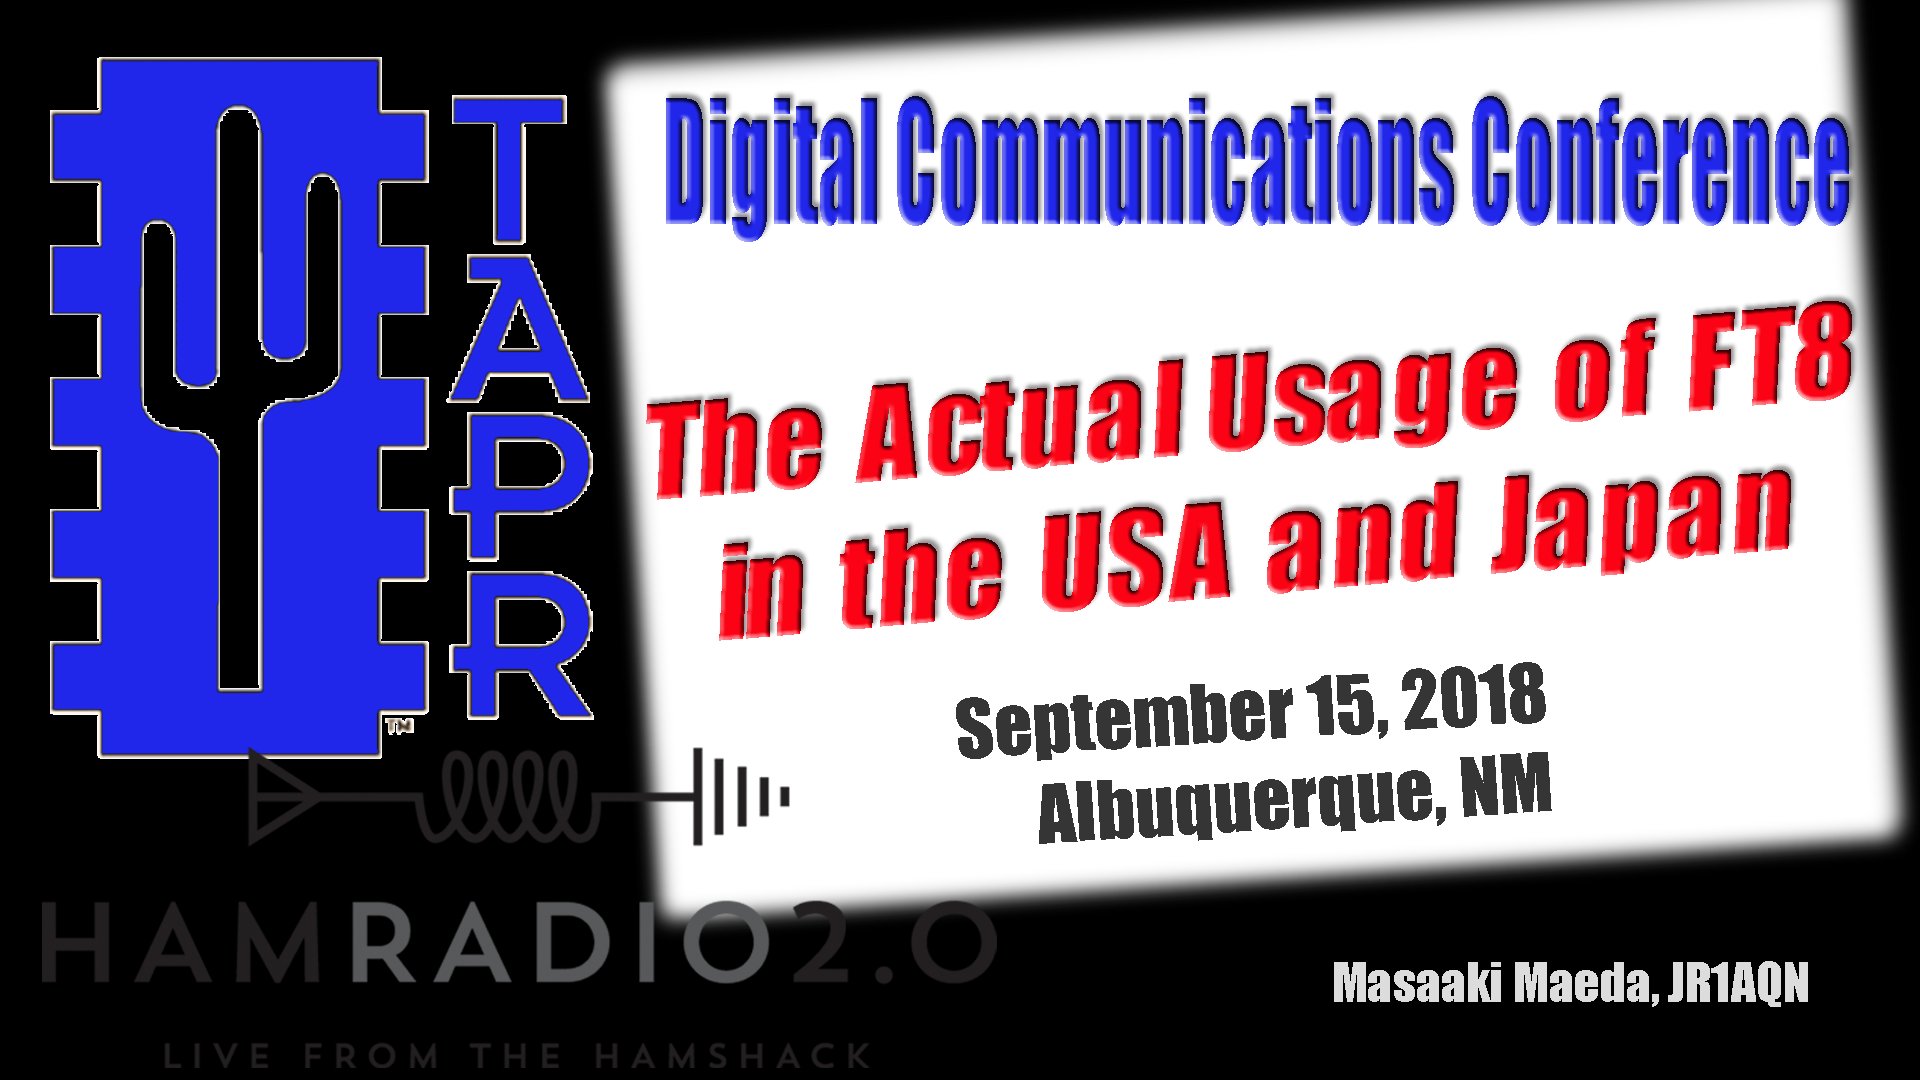 Episode 186: FT8 Actual Usage in the USA and Japan from TAPR